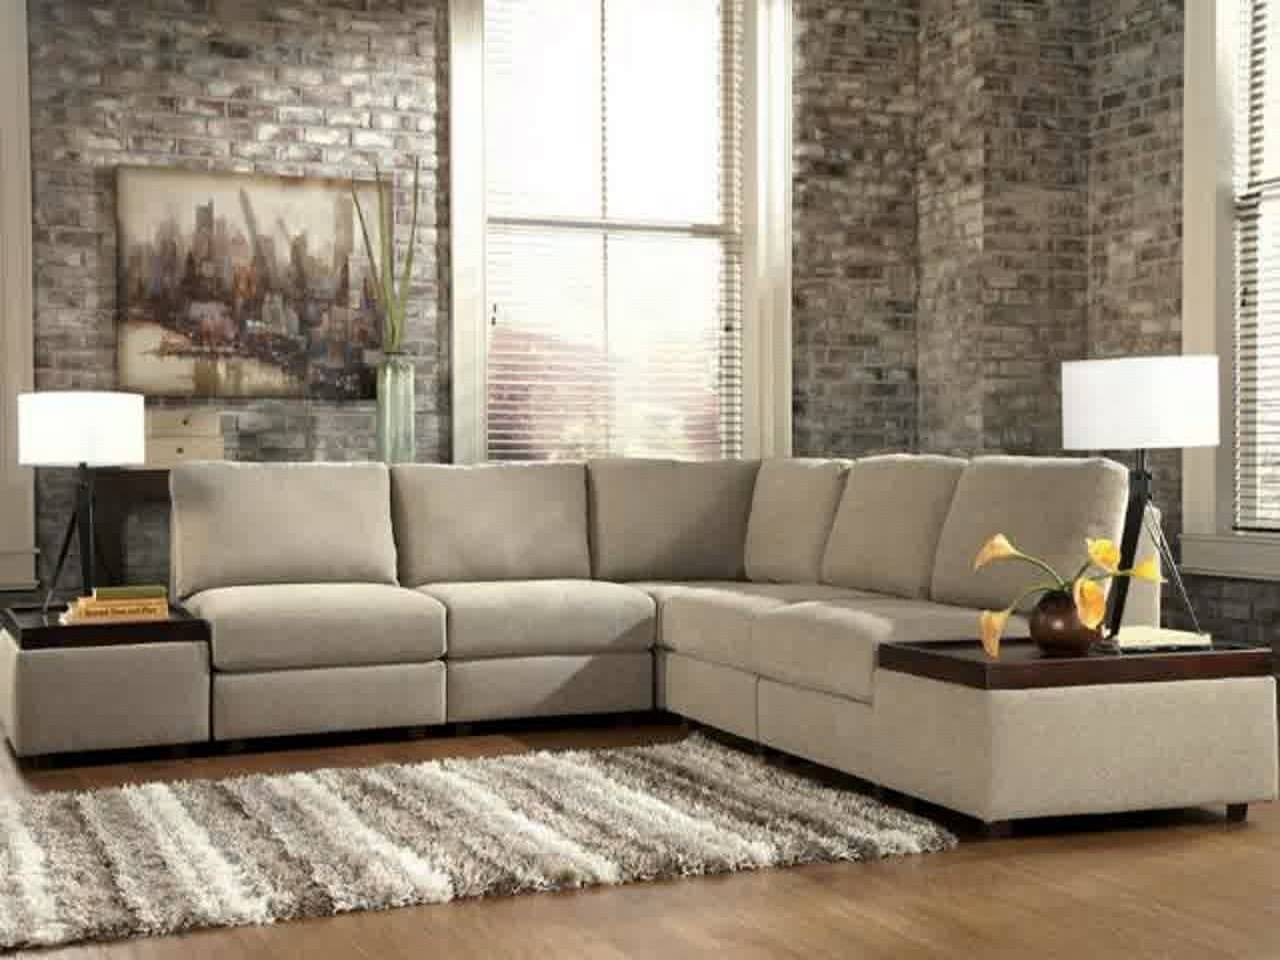 sectional sofas canada dispose sofa 10 top in ideas